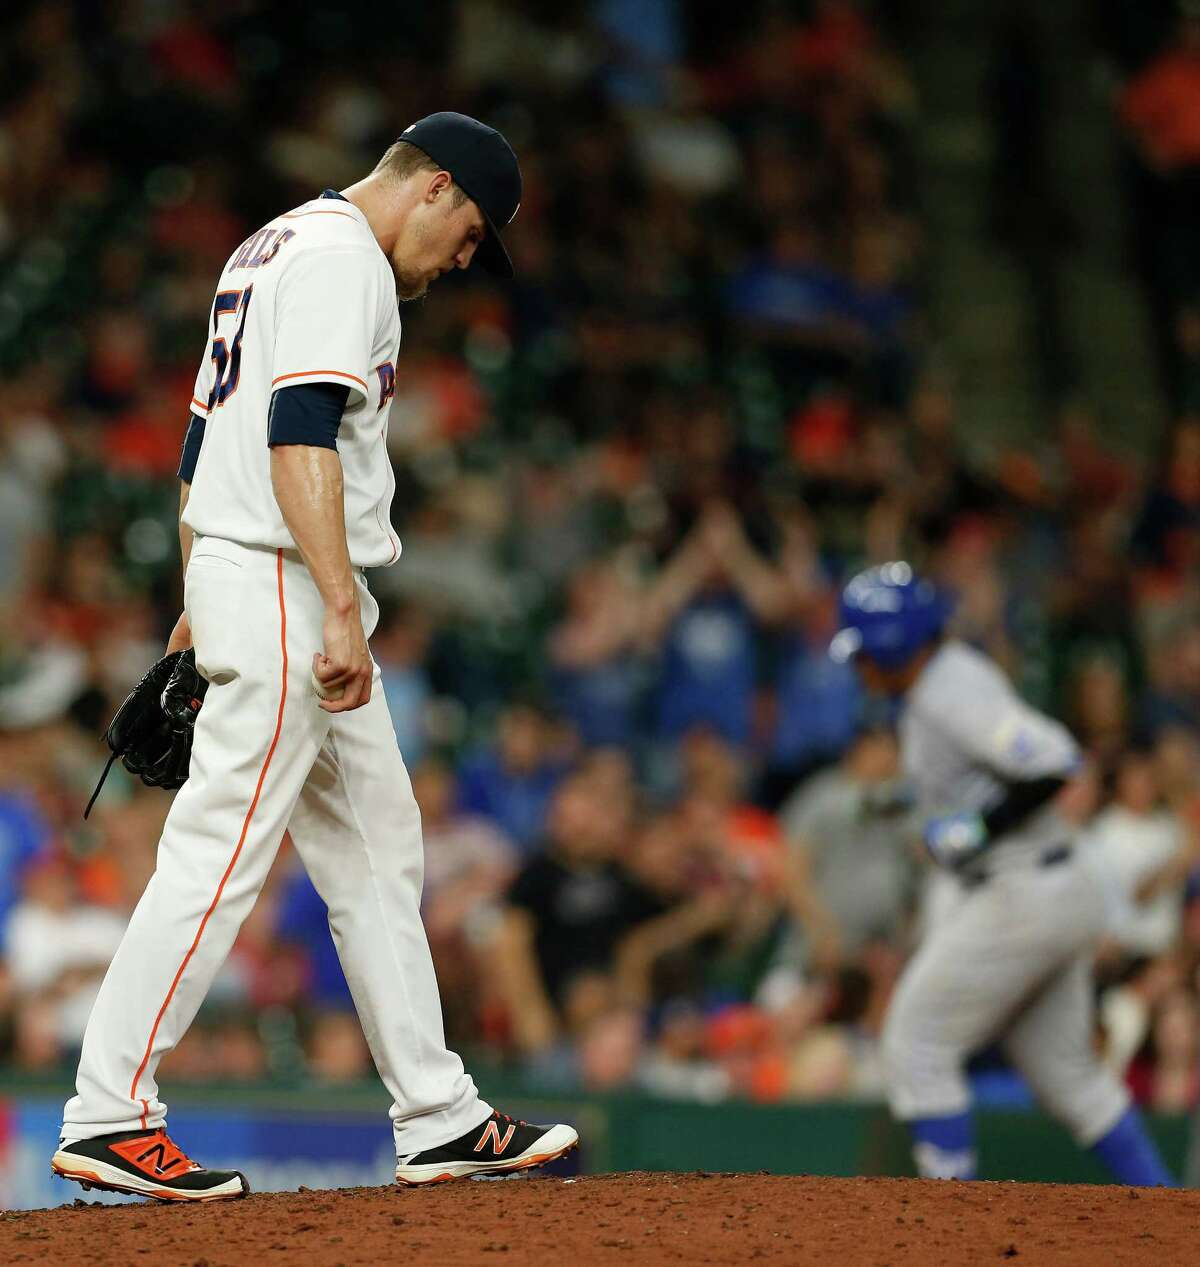 Ken Giles has struggled so far since being acquired by the Astros in a blockbuster offseason traded from Philadelphia.